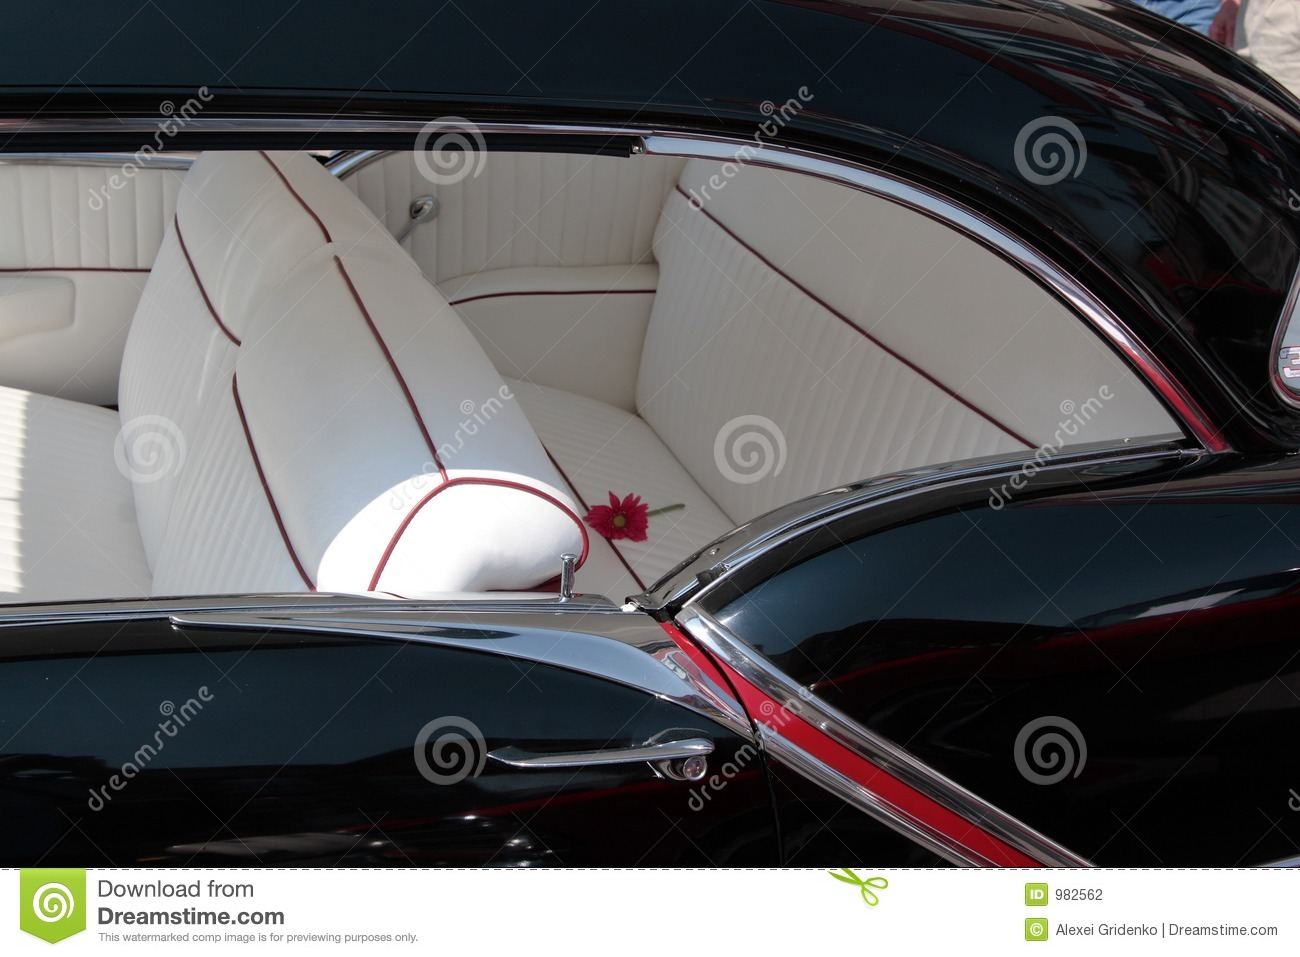 classic car interior stock photo image of refurbish. Black Bedroom Furniture Sets. Home Design Ideas